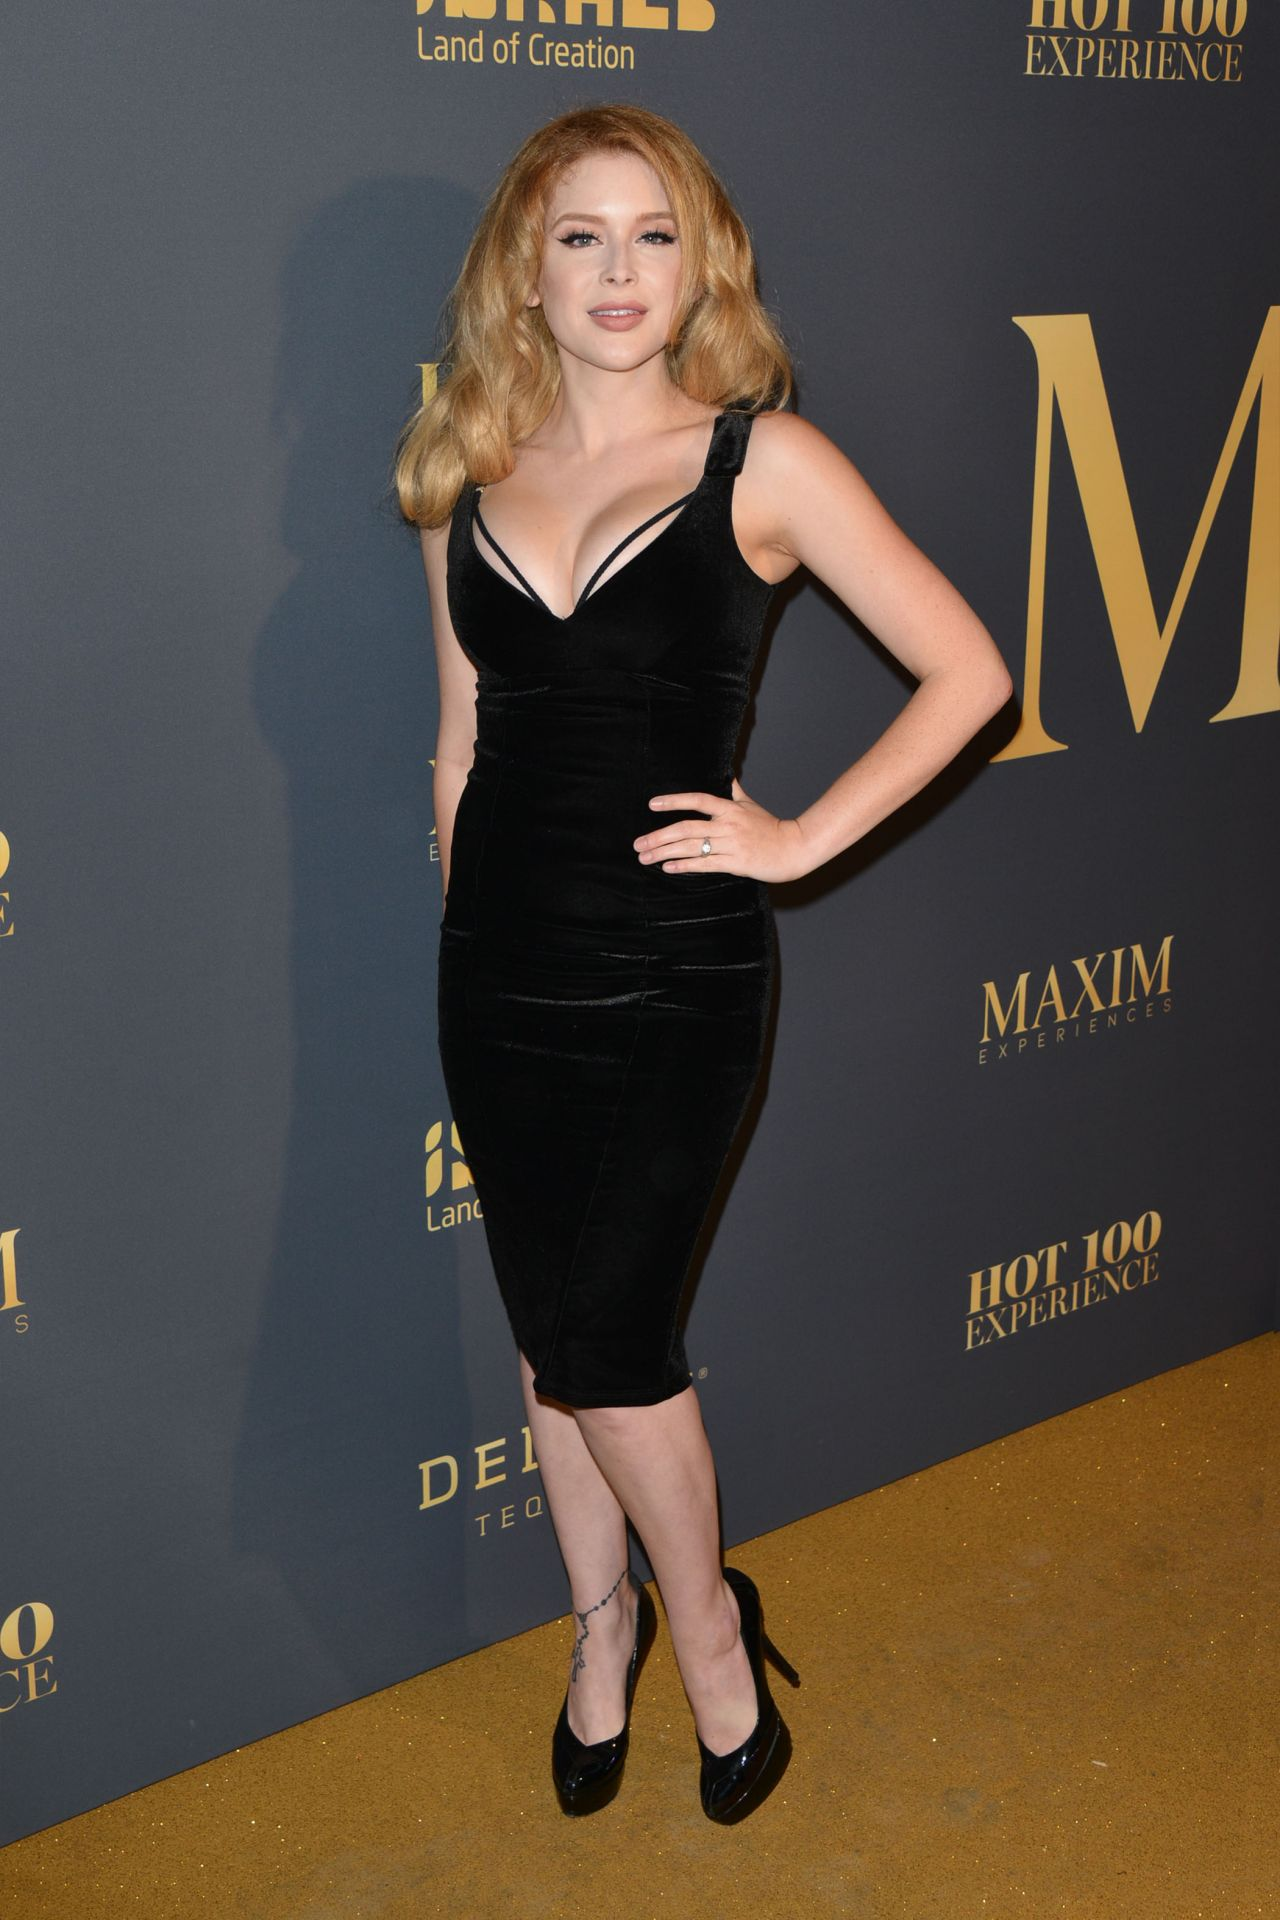 1f820bd82e3c Renee olstead maxim hot experiences party jpg 1280x1920 Renee party